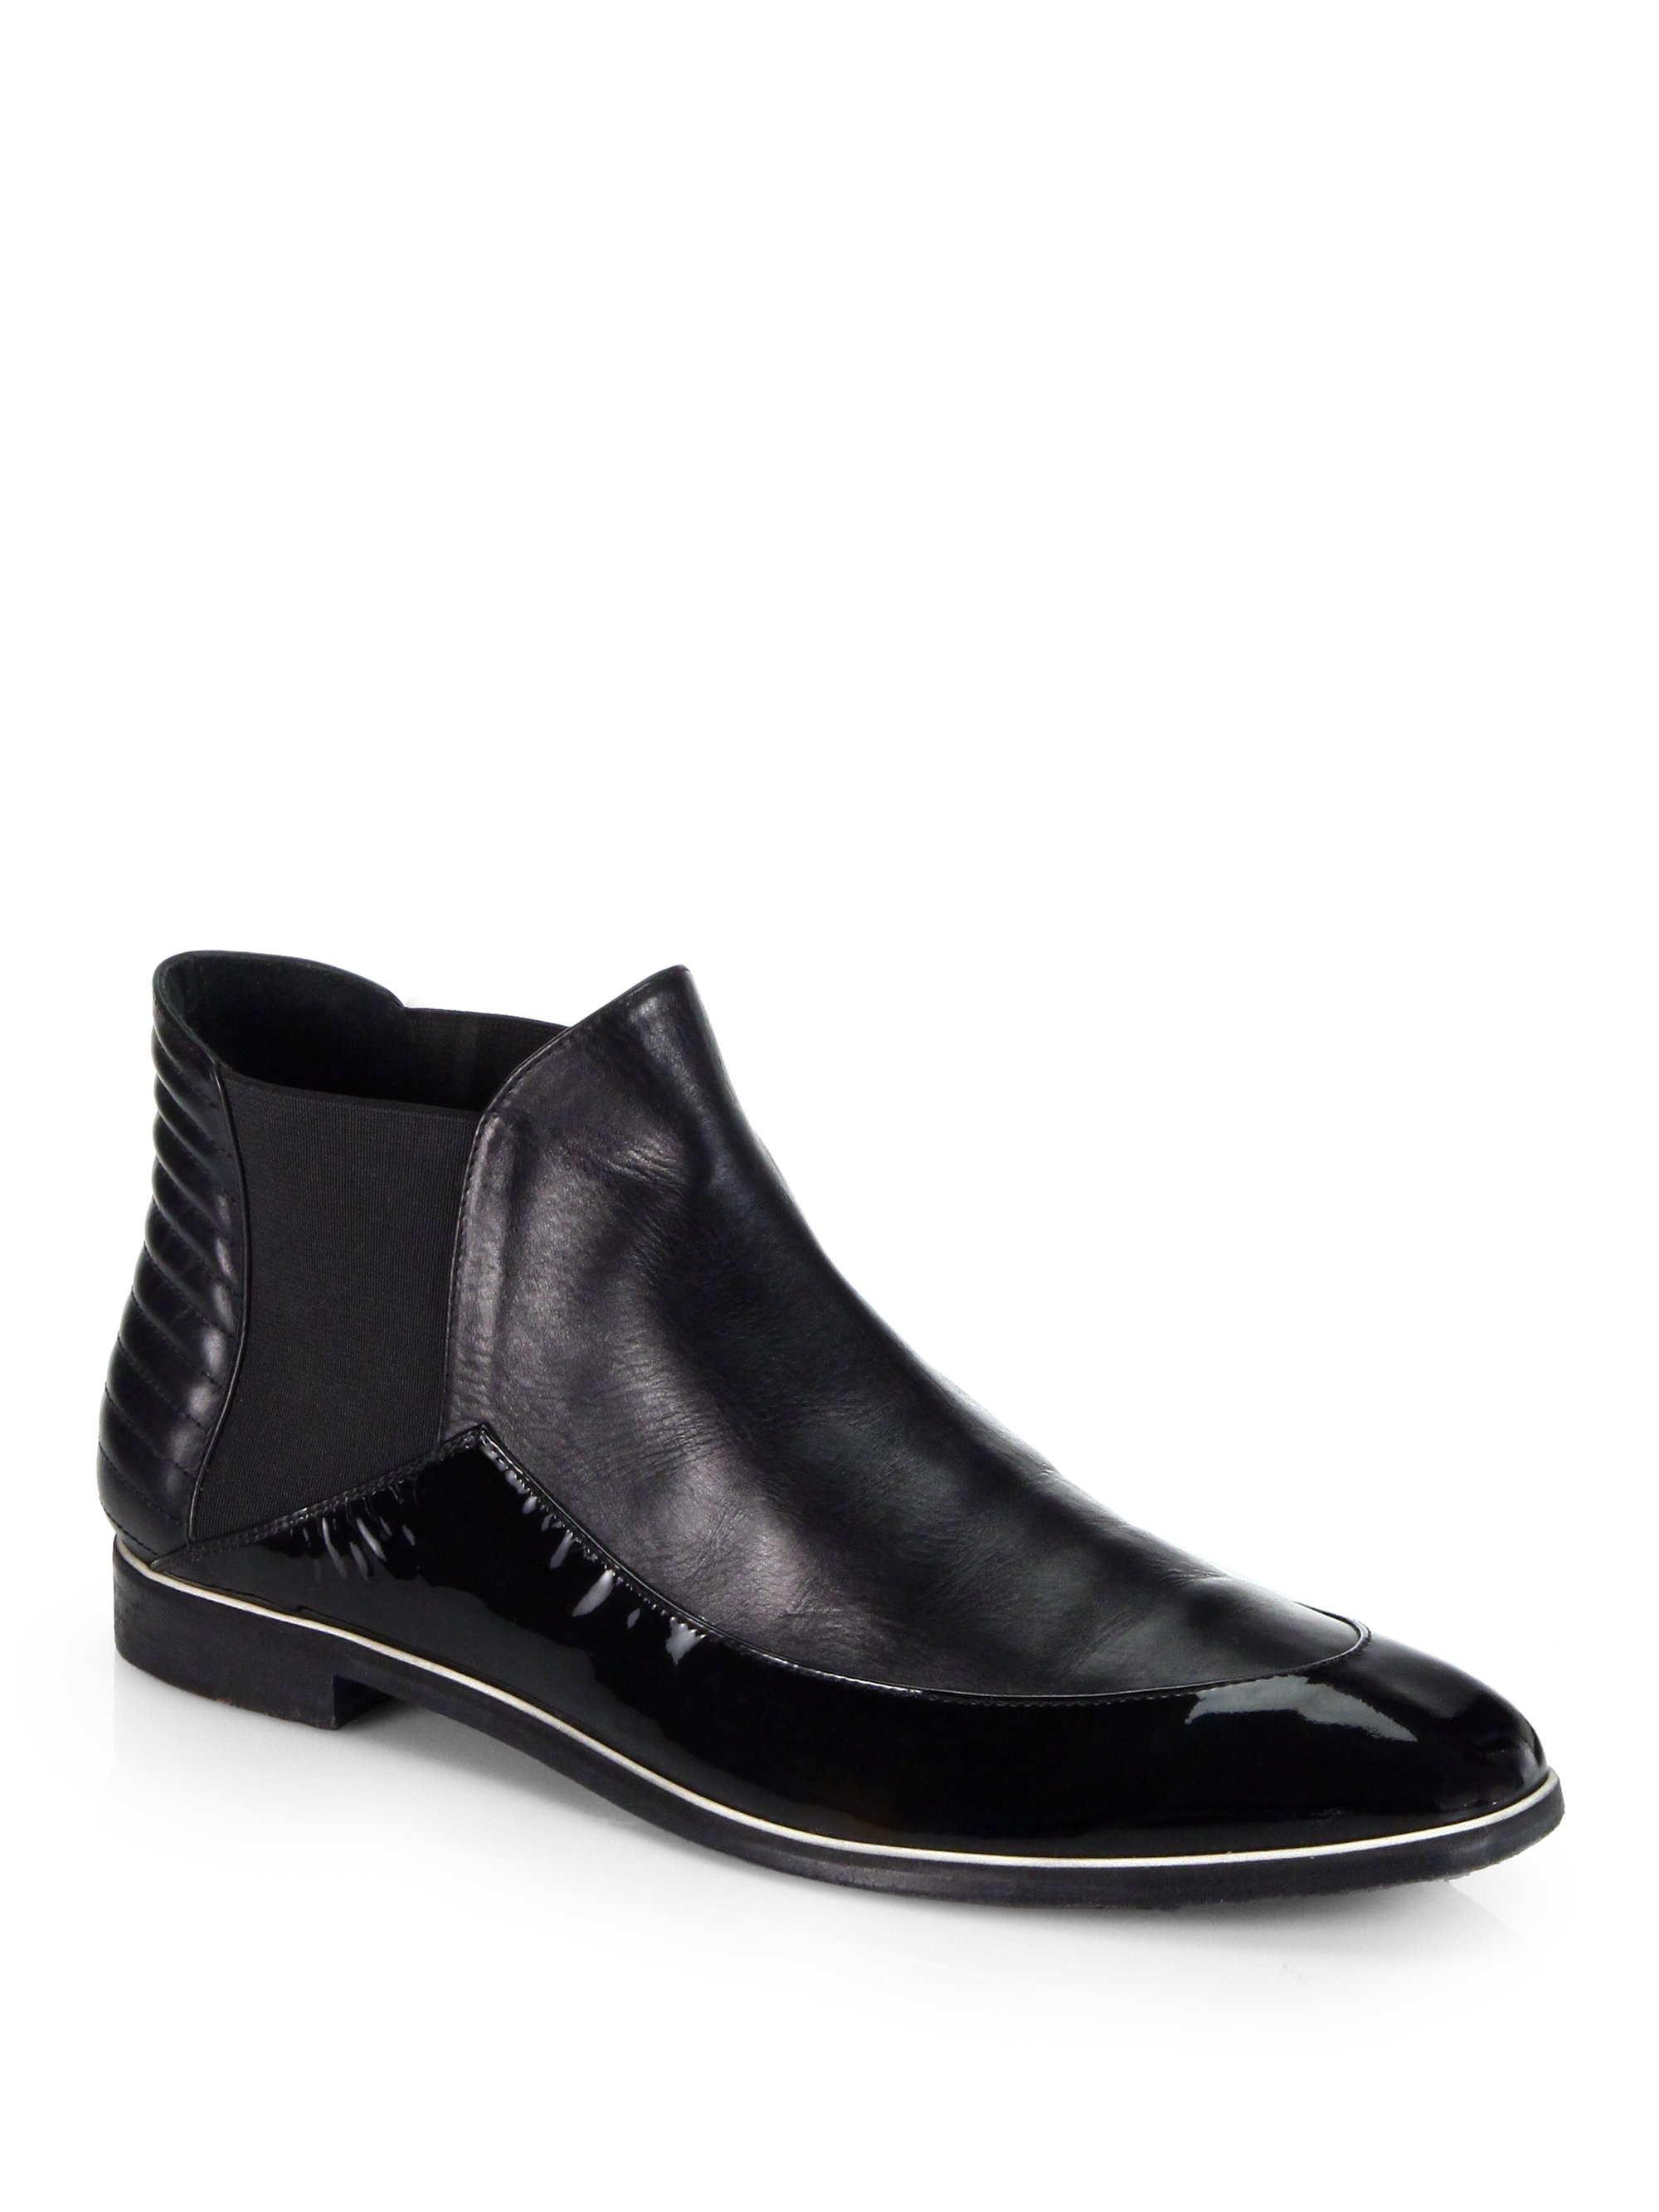 nicholas kirkwood leather patent leather chelsea boots in